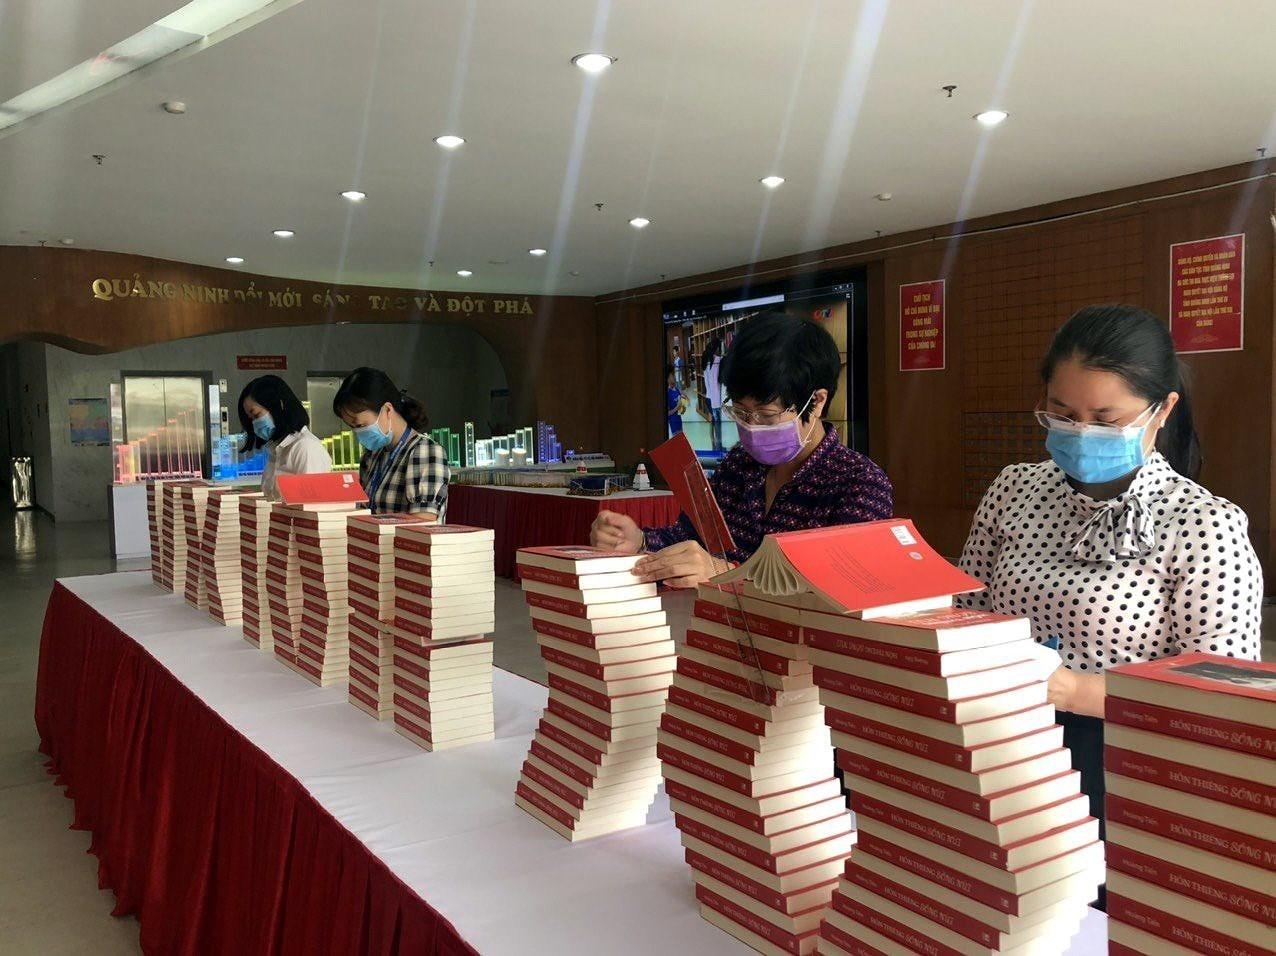 Books on election on display in Quang Ninh province hinh anh 2